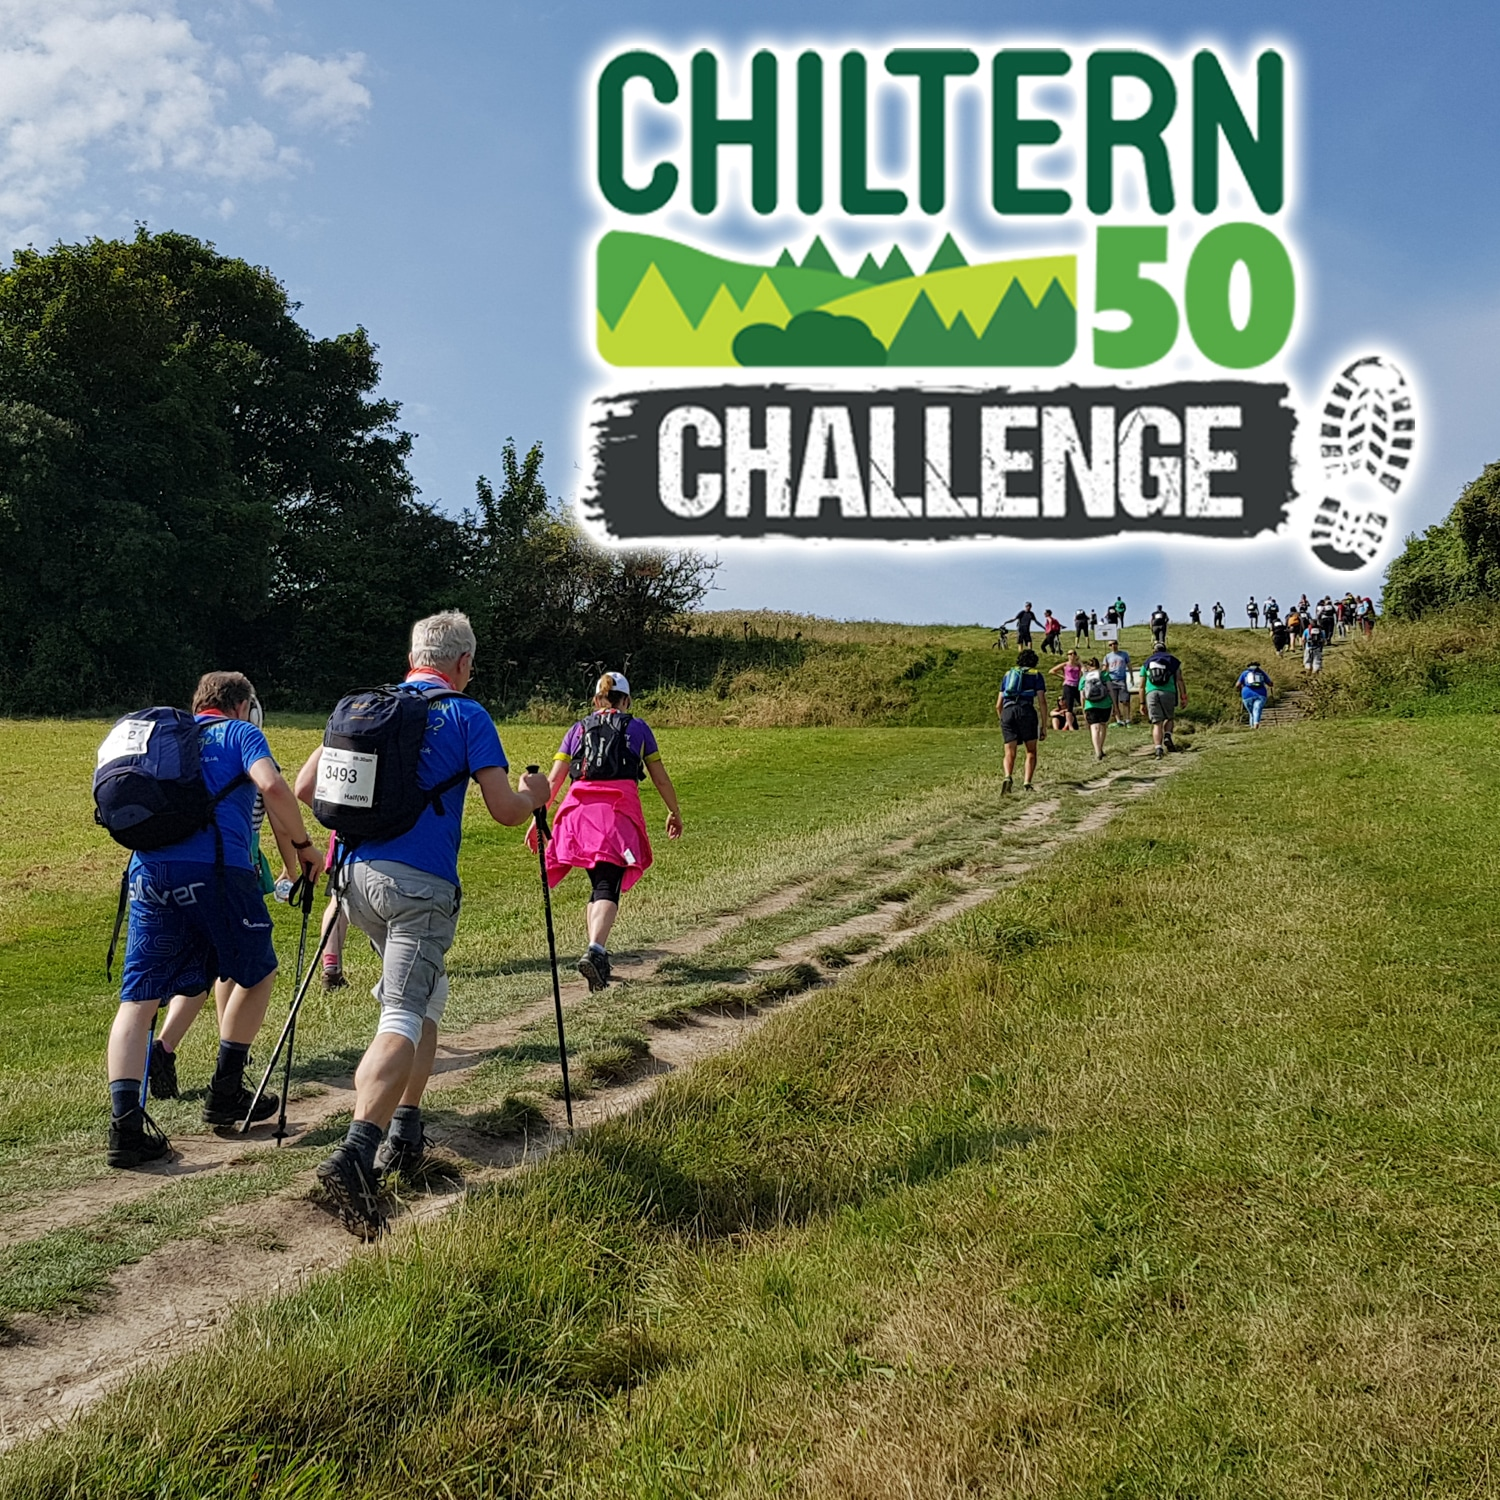 Images shows a group of three walkers walking along a trail with other walkers in the distance. Green fields and trees line the trail. Images shows a group of three walkers walking along a trail with other walkers in the distance. Green fields and trees line the trail. 'Chiltern 50 Challenge' is written on the top right of the image.